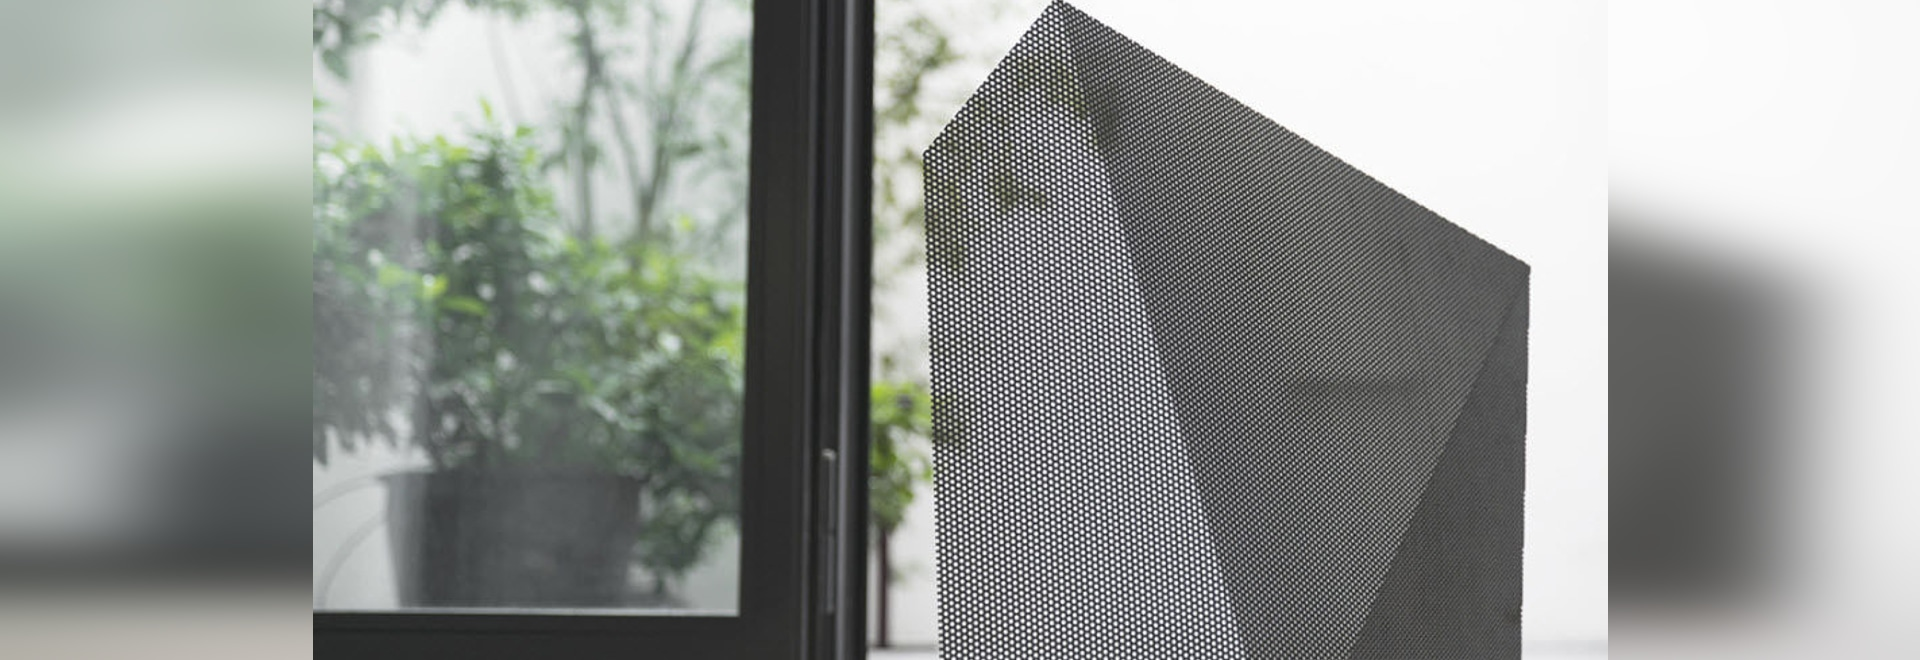 NEW: fireplace screen by EDIZIONI